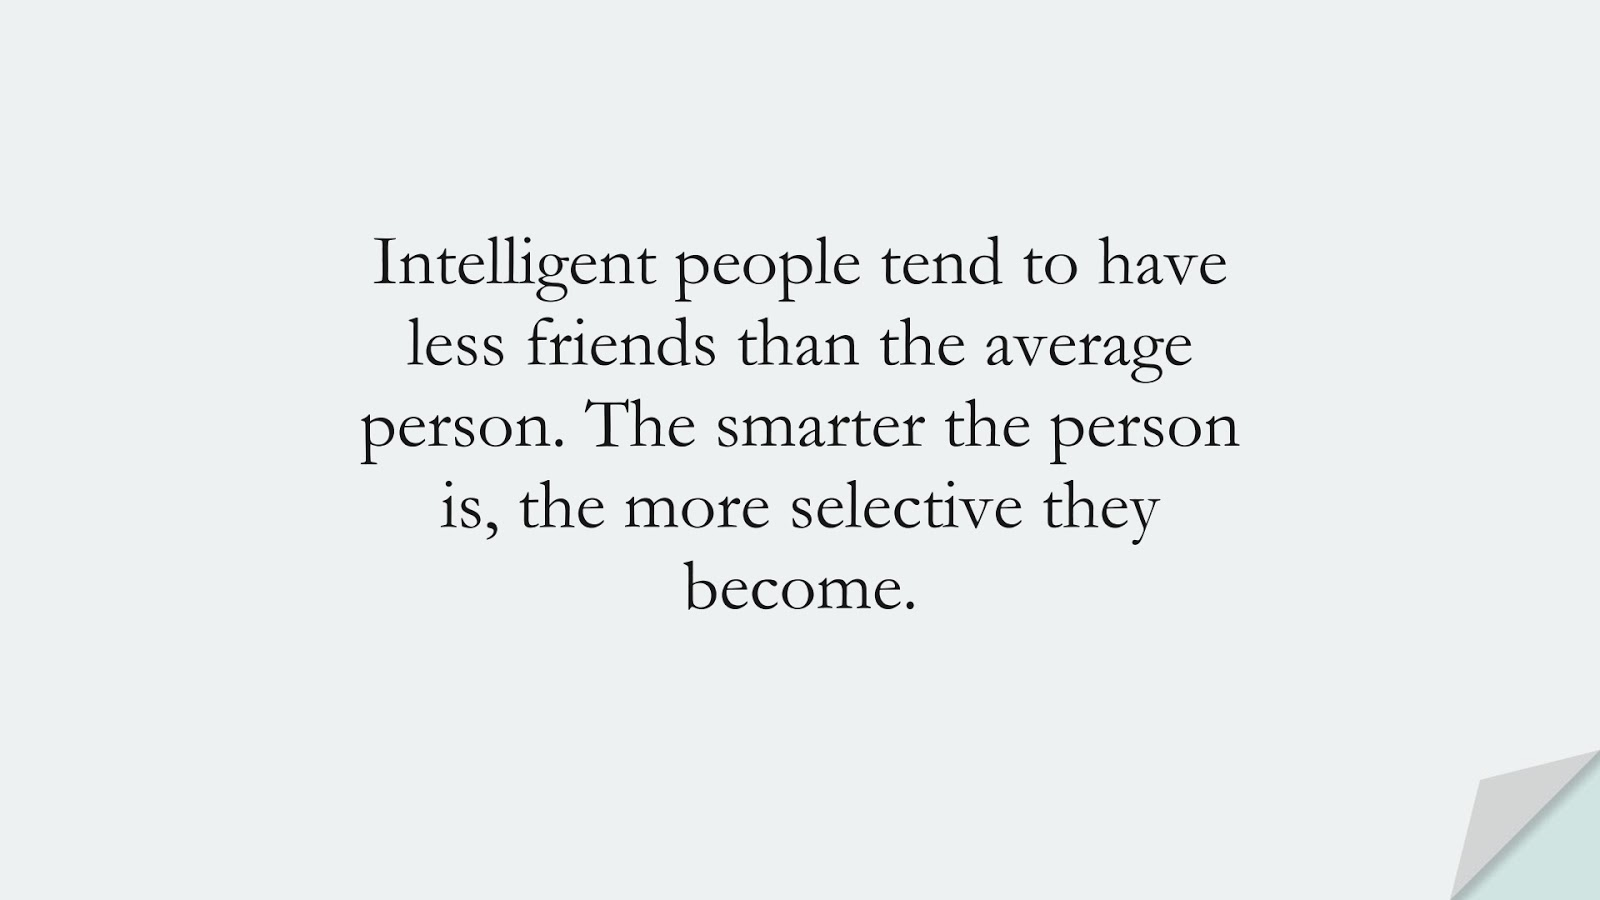 Intelligent people tend to have less friends than the average person. The smarter the person is, the more selective they become.FALSE